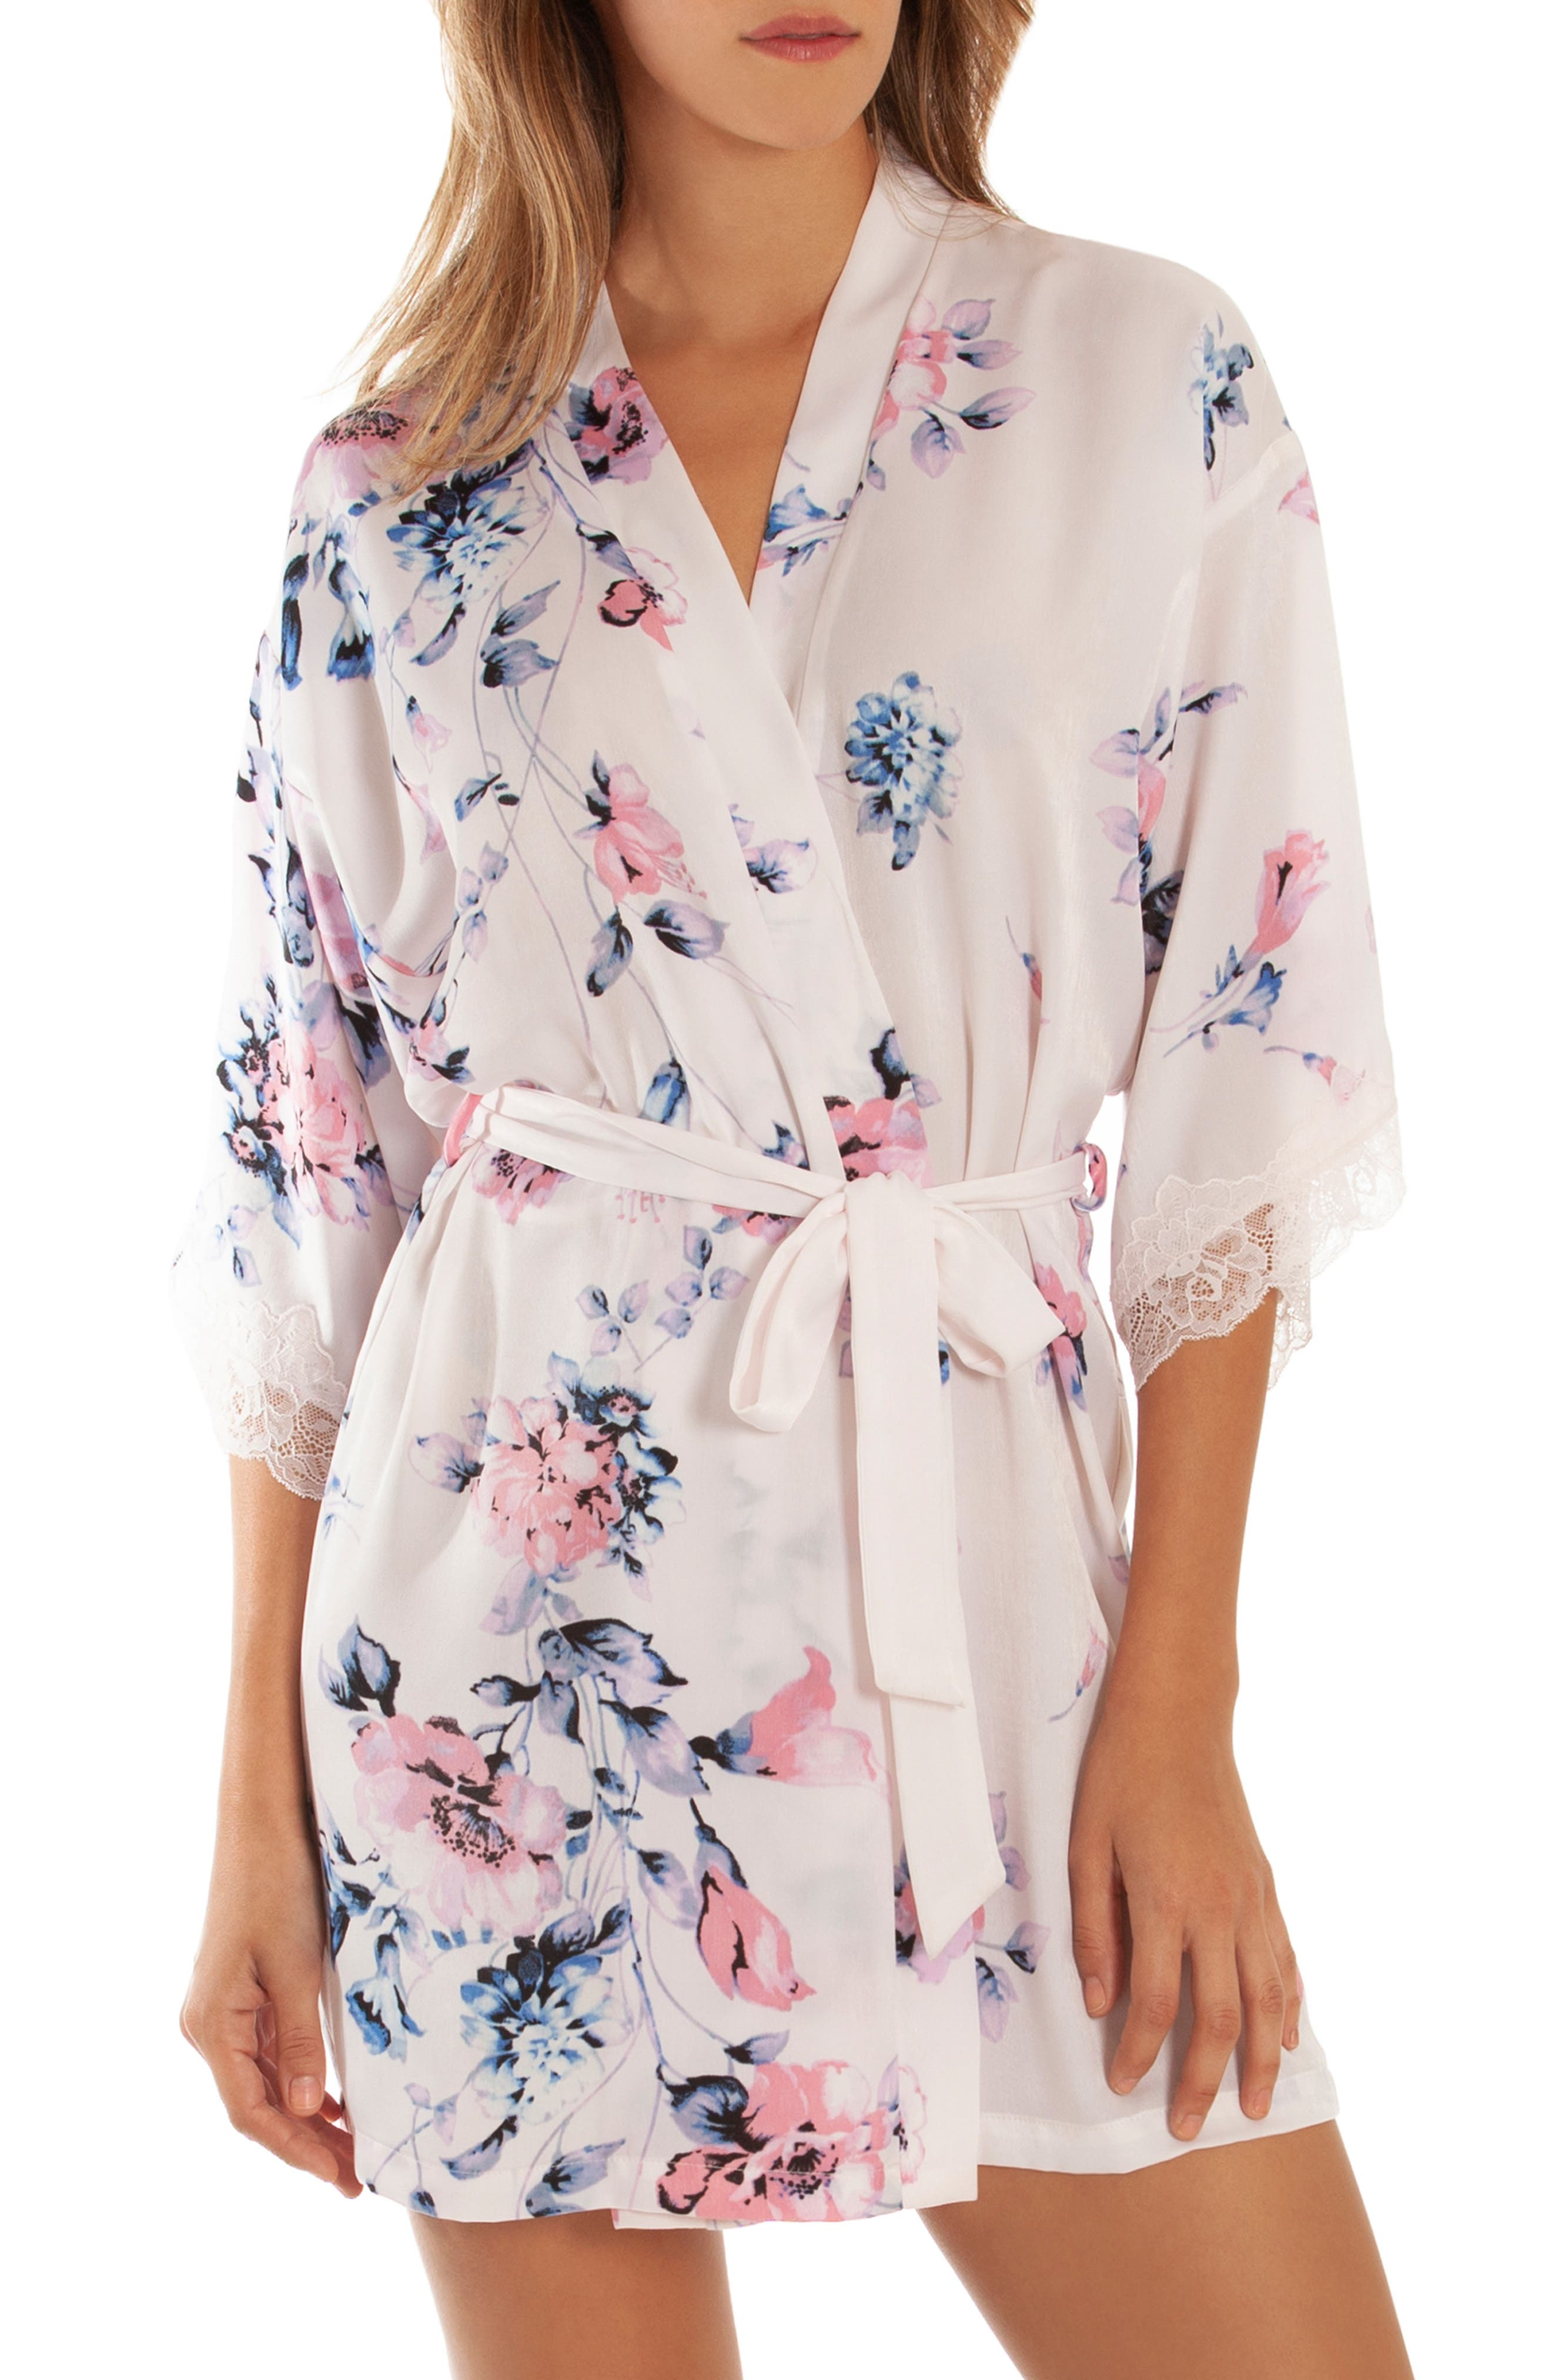 IN BLOOM BY JONQUIL Chiffon Wrap, Main, color, 655